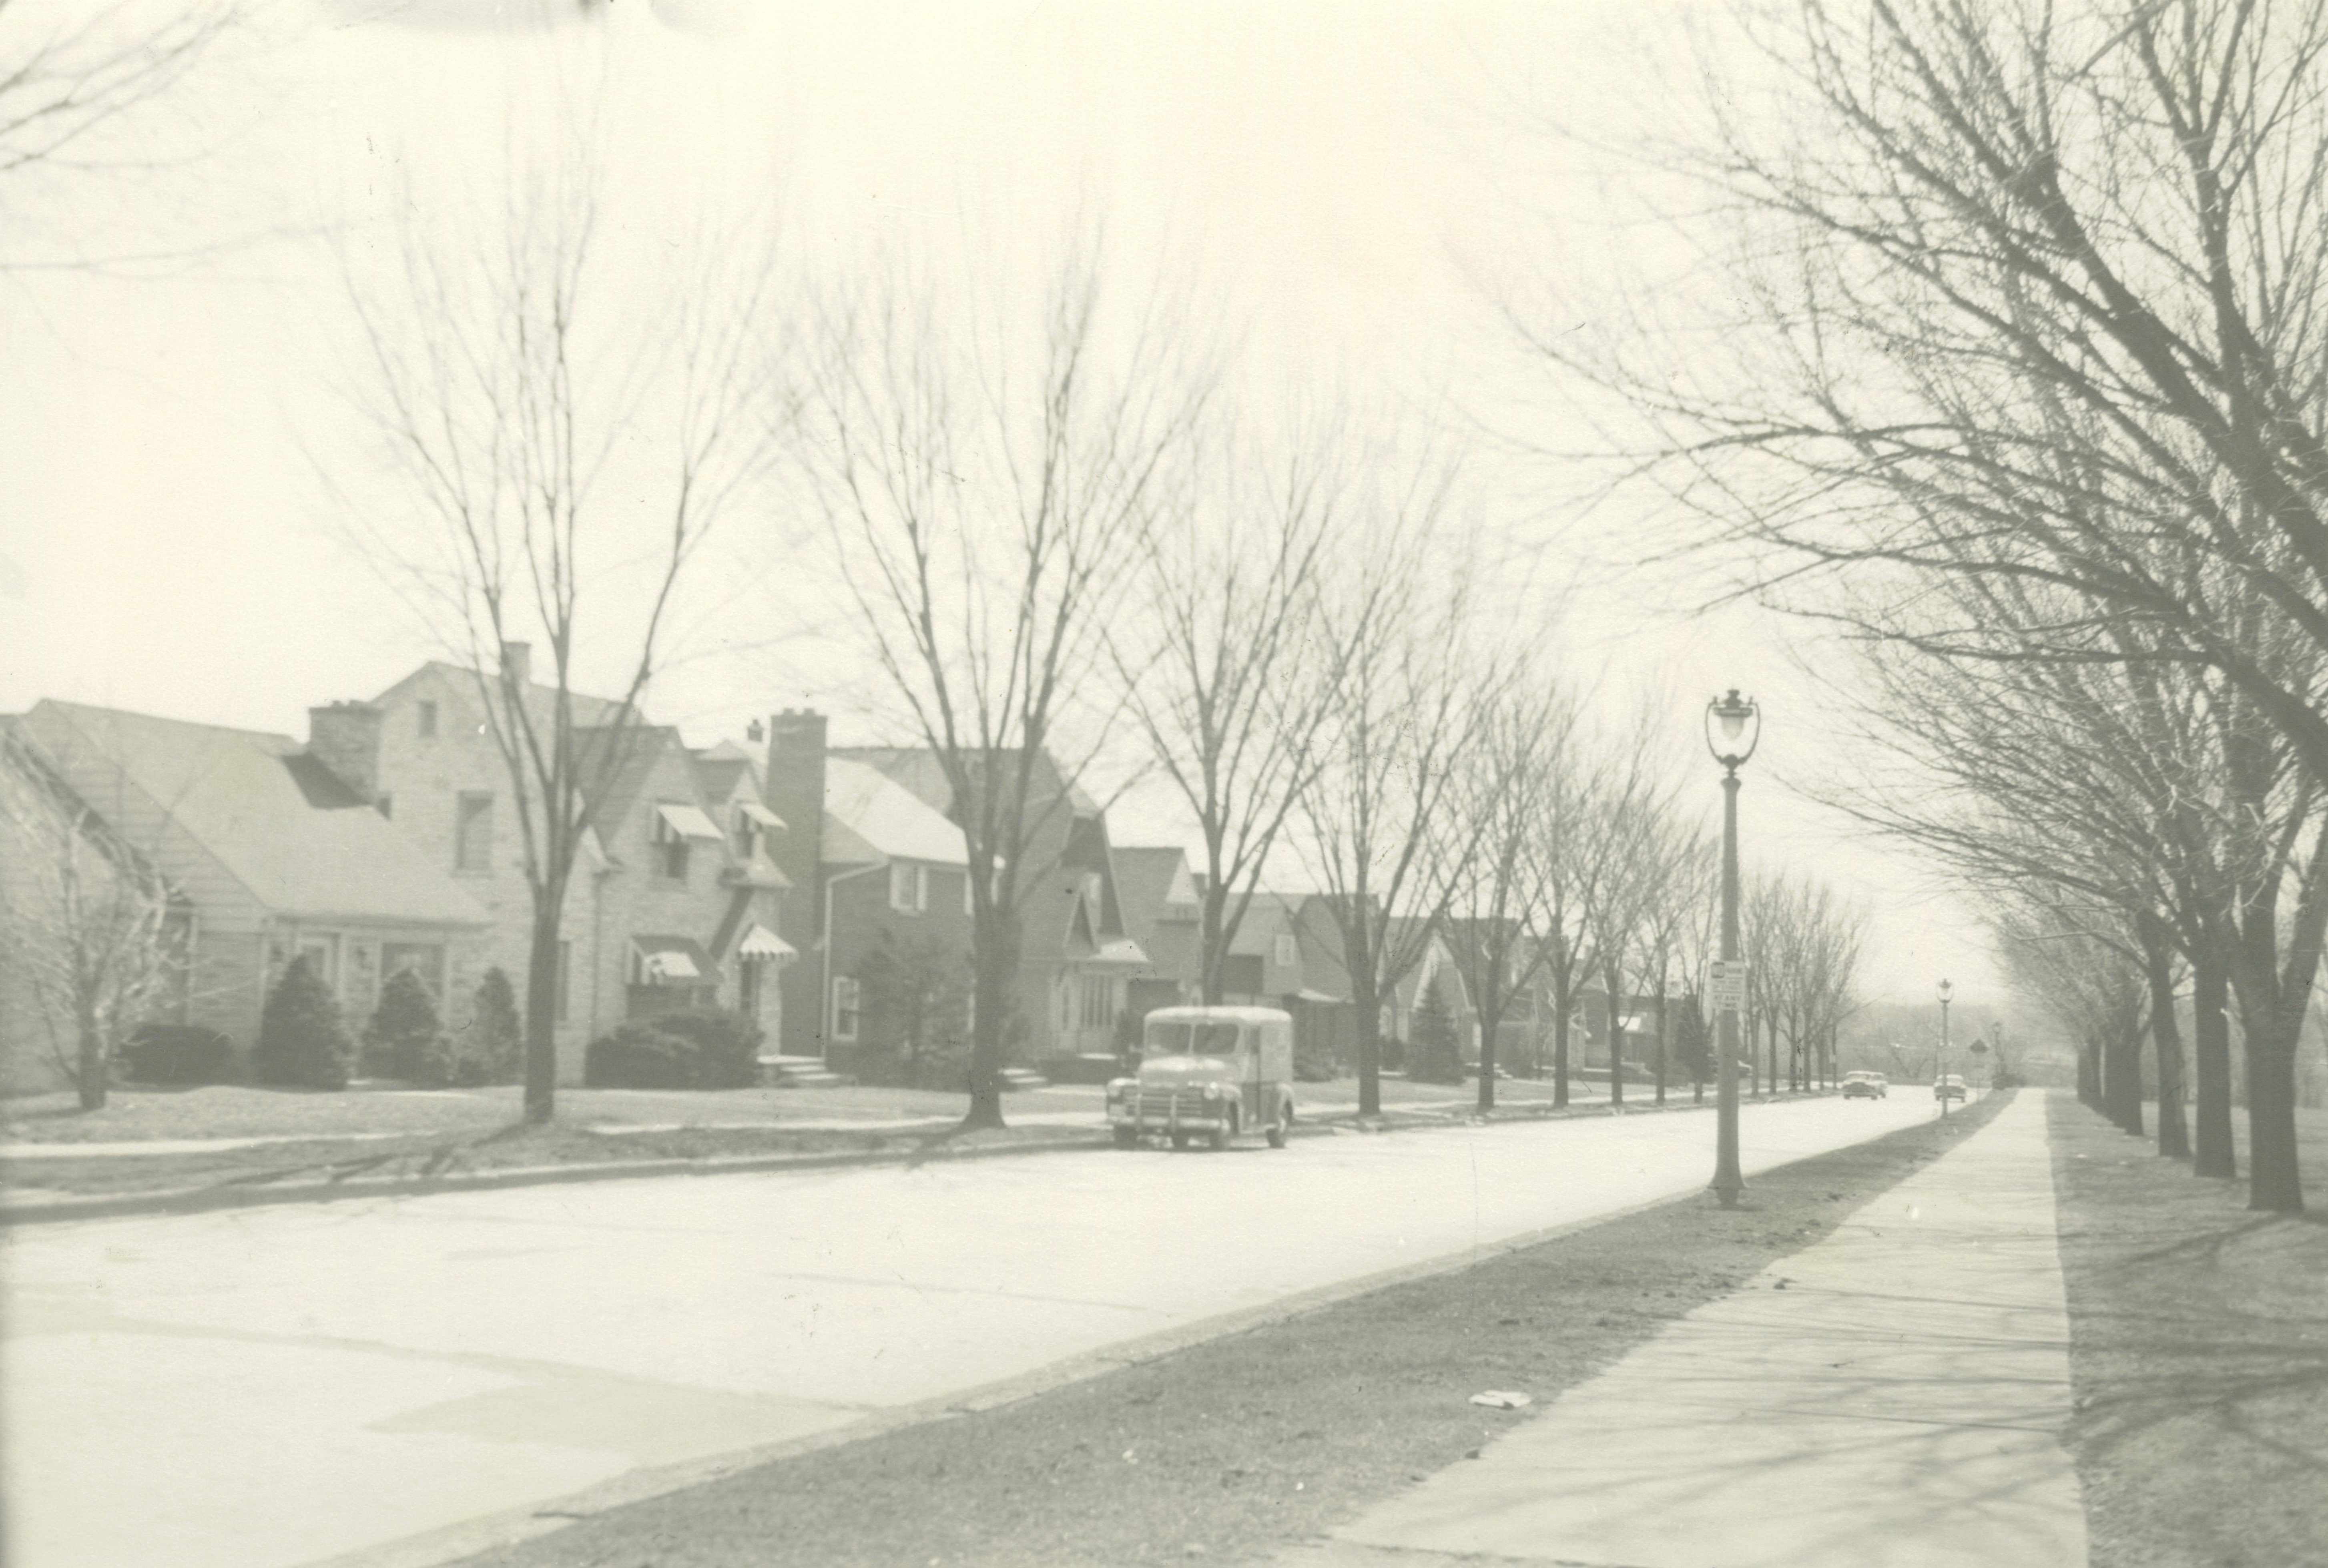 <table class=&quot;lightbox&quot;><tr><td colspan=2 class=&quot;lightbox-title&quot;>Homes on N. 47th Street</td></tr><tr><td colspan=2 class=&quot;lightbox-caption&quot;>These homes on a section of N. 47th Street, between Vliet and Highland, were all demolished to make room for the construction of Highway 175.</td></tr><tr><td colspan=2 class=&quot;lightbox-spacer&quot;></td></tr><tr class=&quot;lightbox-detail&quot;><td class=&quot;cell-title&quot;>Source: </td><td class=&quot;cell-value&quot;>From the Historic Photo Collection of the Milwaukee Public Library. Reprinted with permission.<br /><a href=&quot;http://content.mpl.org/cdm/singleitem/collection/HstoricPho/id/8686/rec/43&quot; target=&quot;_blank&quot;>Milwaukee Public Library</a></td></tr><tr class=&quot;filler-row&quot;><td colspan=2>&nbsp;</td></tr></table>